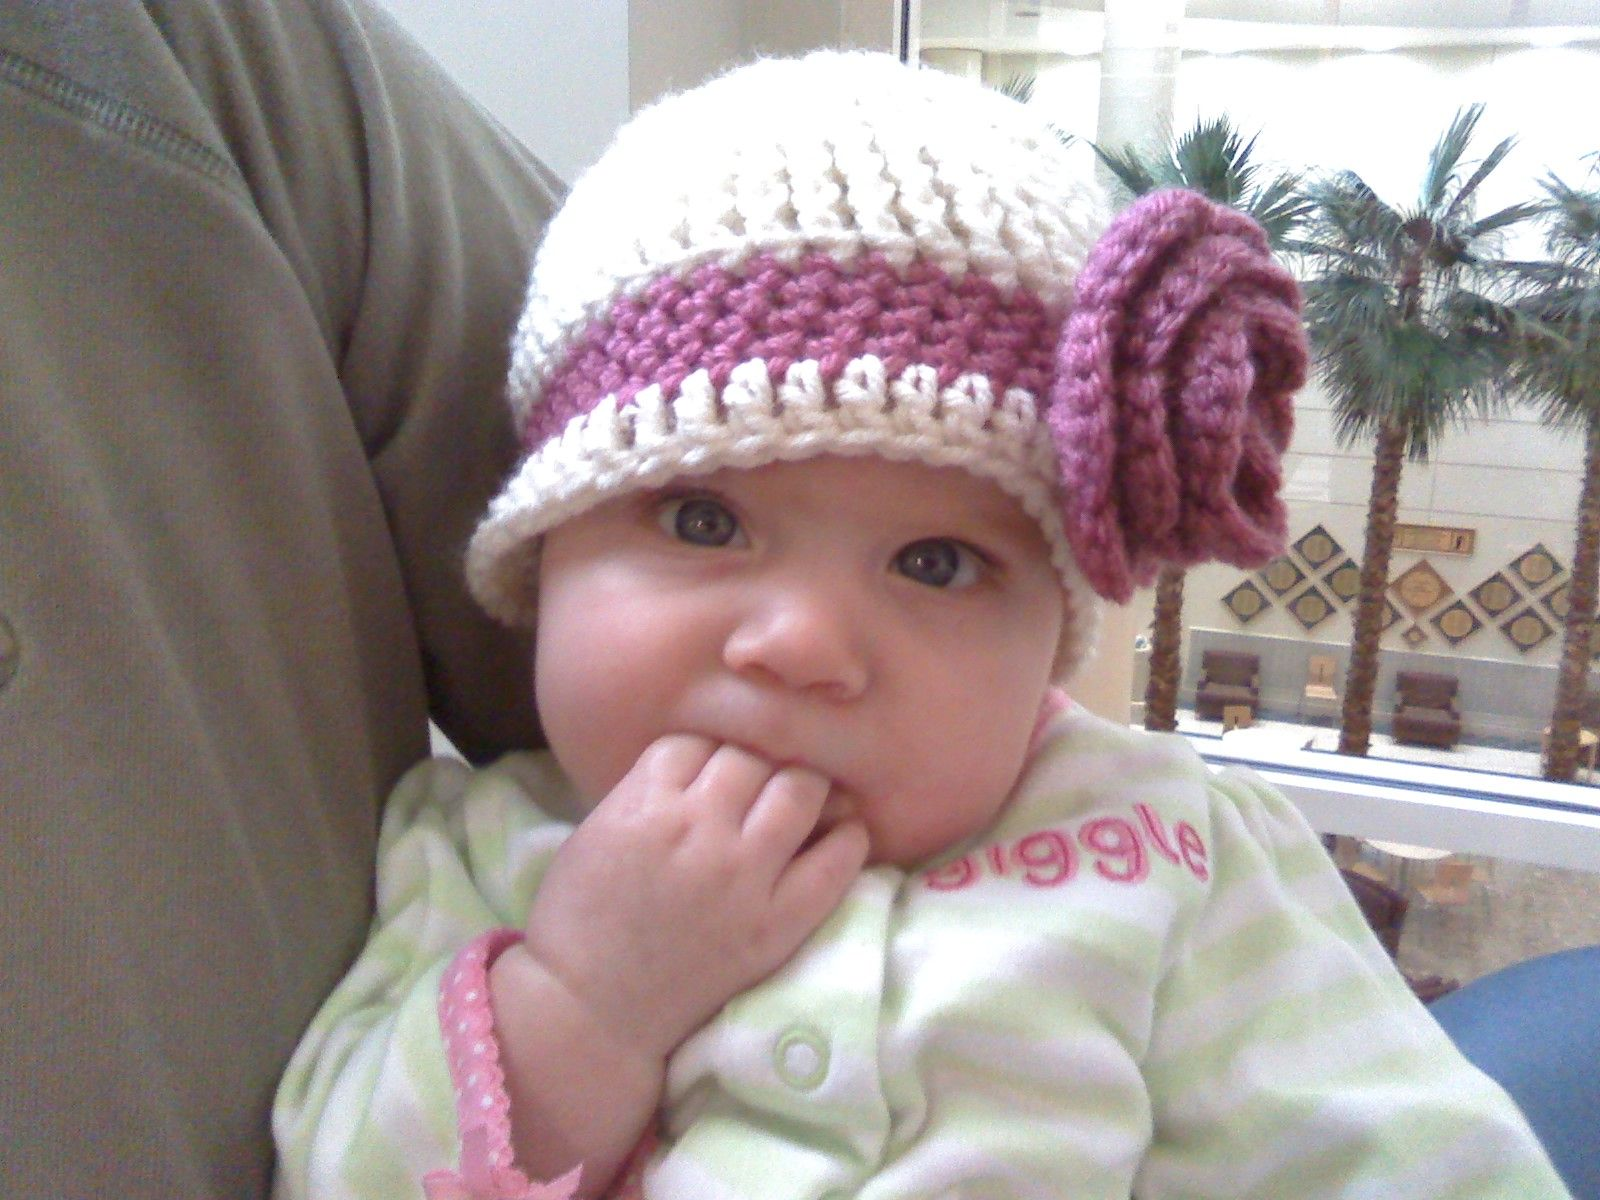 Crochet baby hats free patterns crochet girls hat crochet for crochet flower hats toddlers girls baby children by simply crochet geek free instructions and patterns flat top beanie cap bankloansurffo Image collections